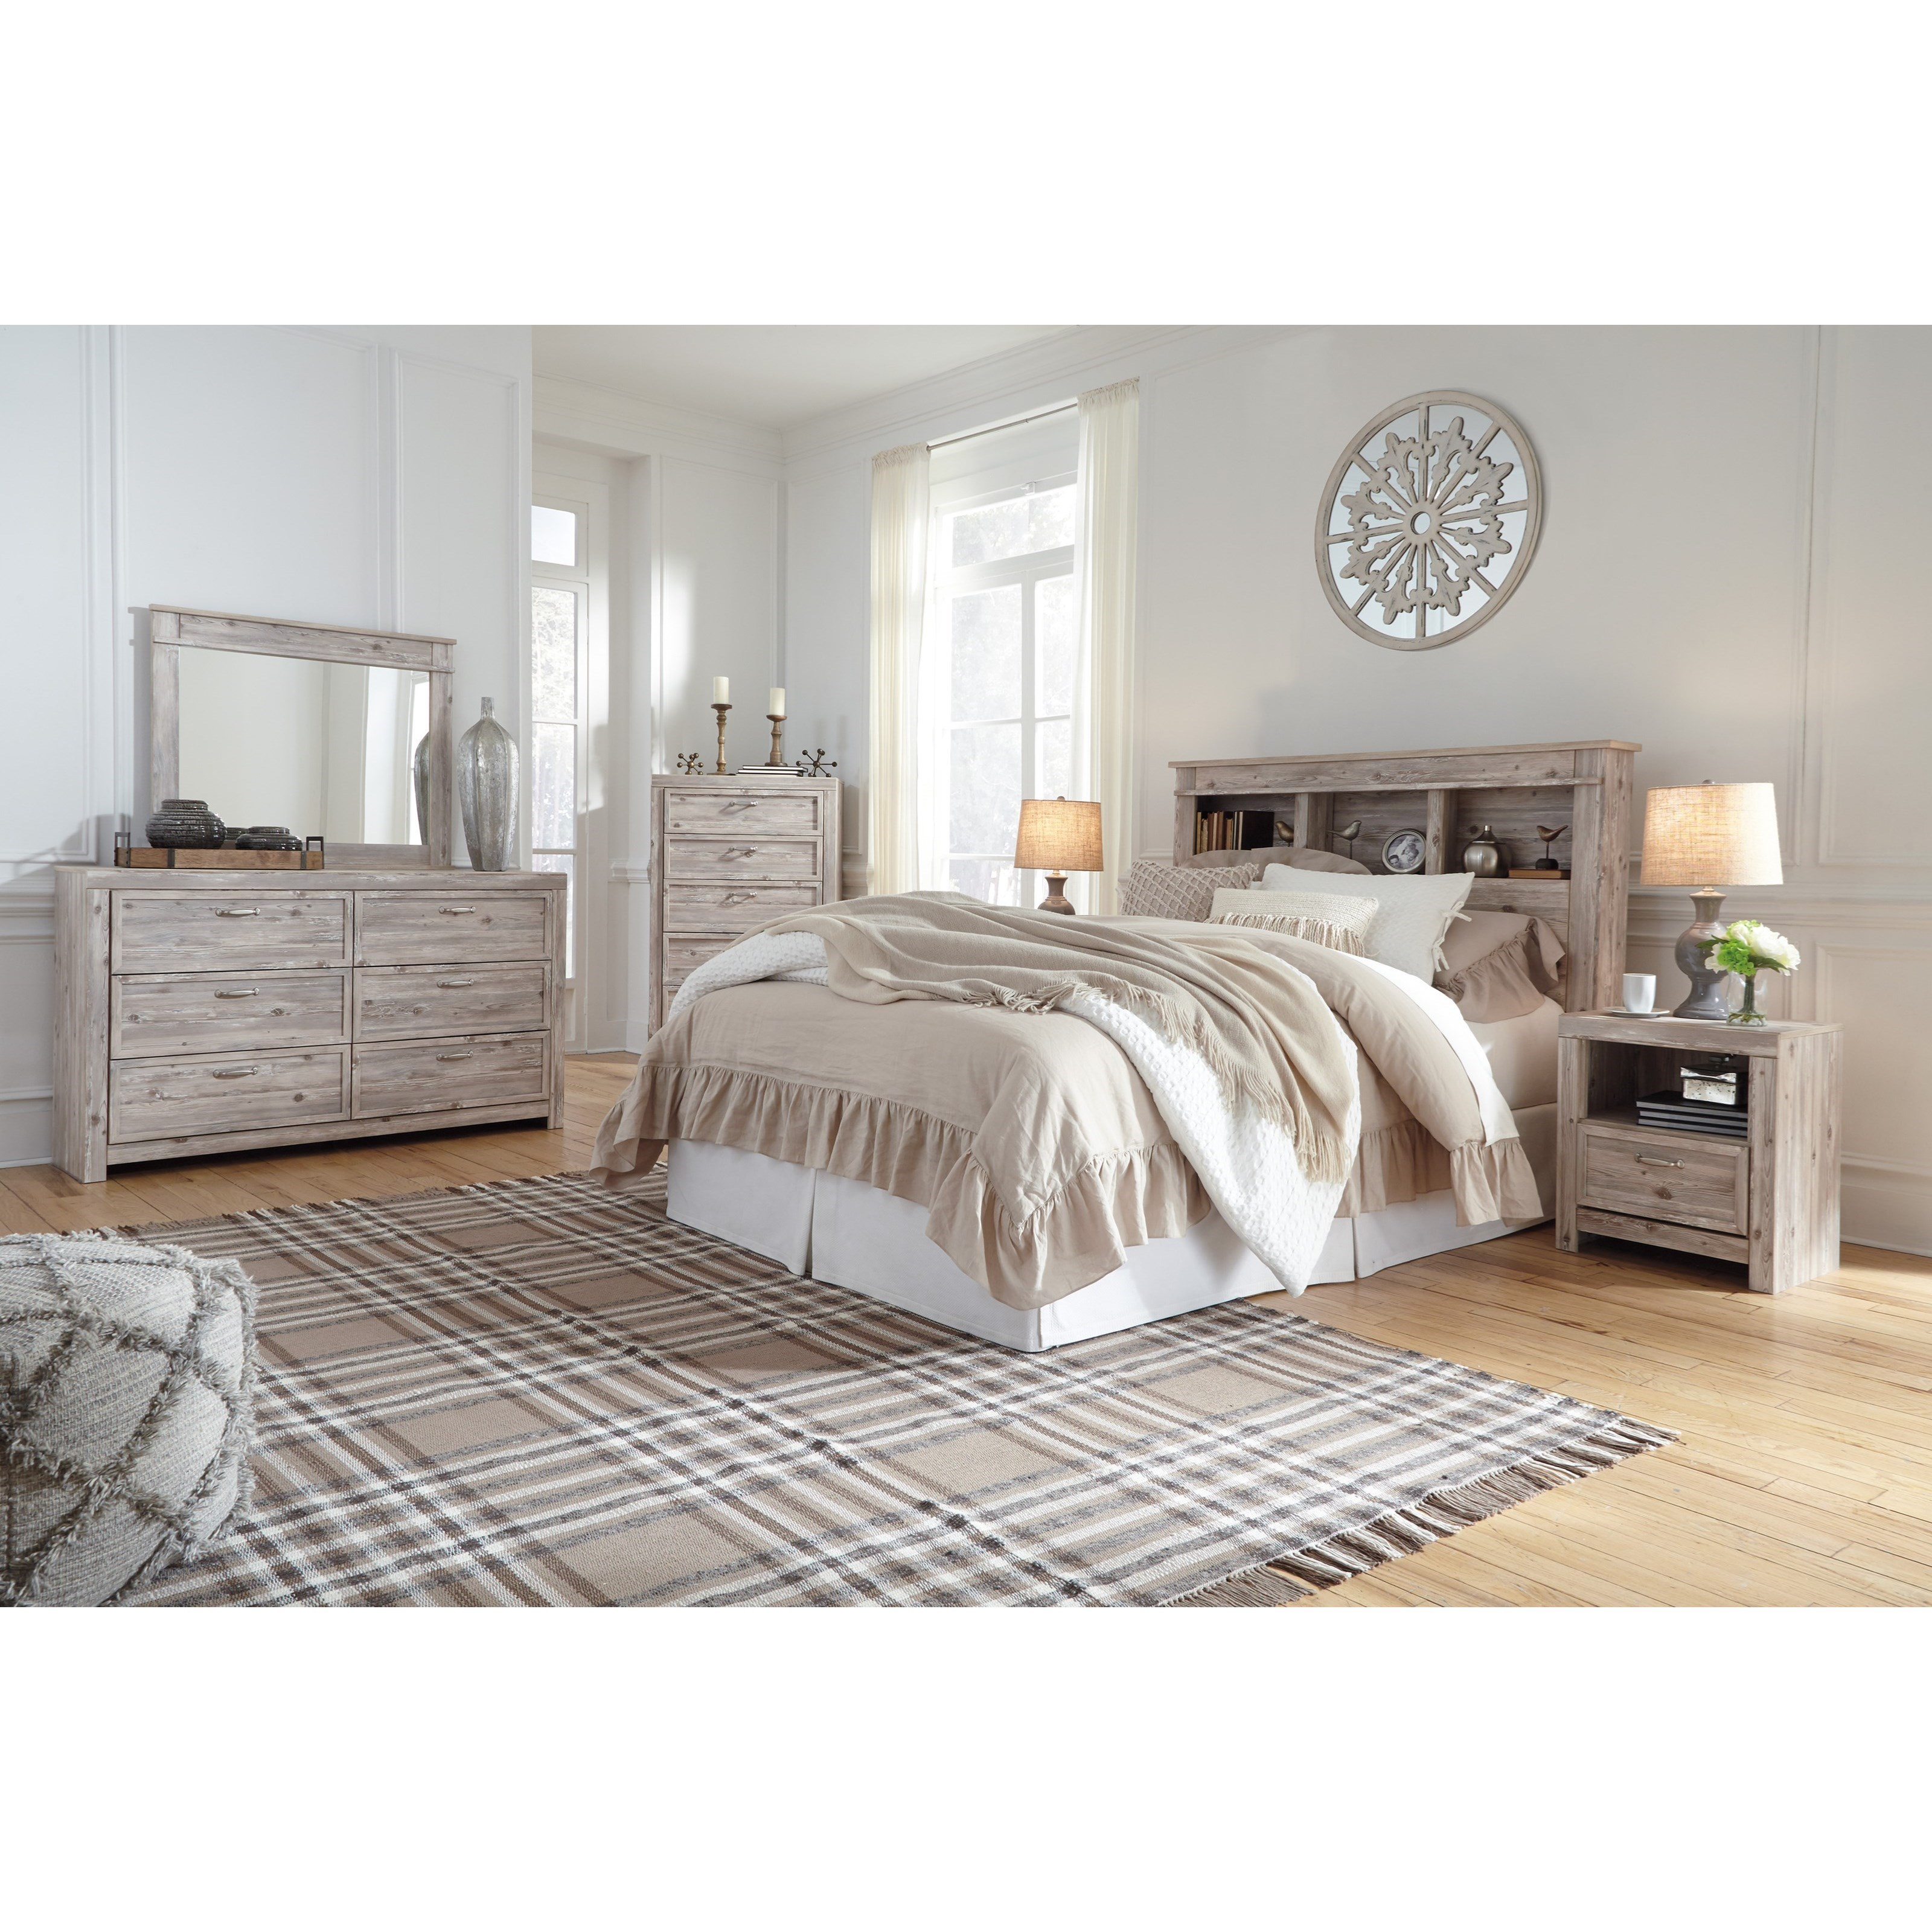 Willabry queen bookcase headboard with built in led lights becker furniture world headboards for London bedroom set with lighted headboard